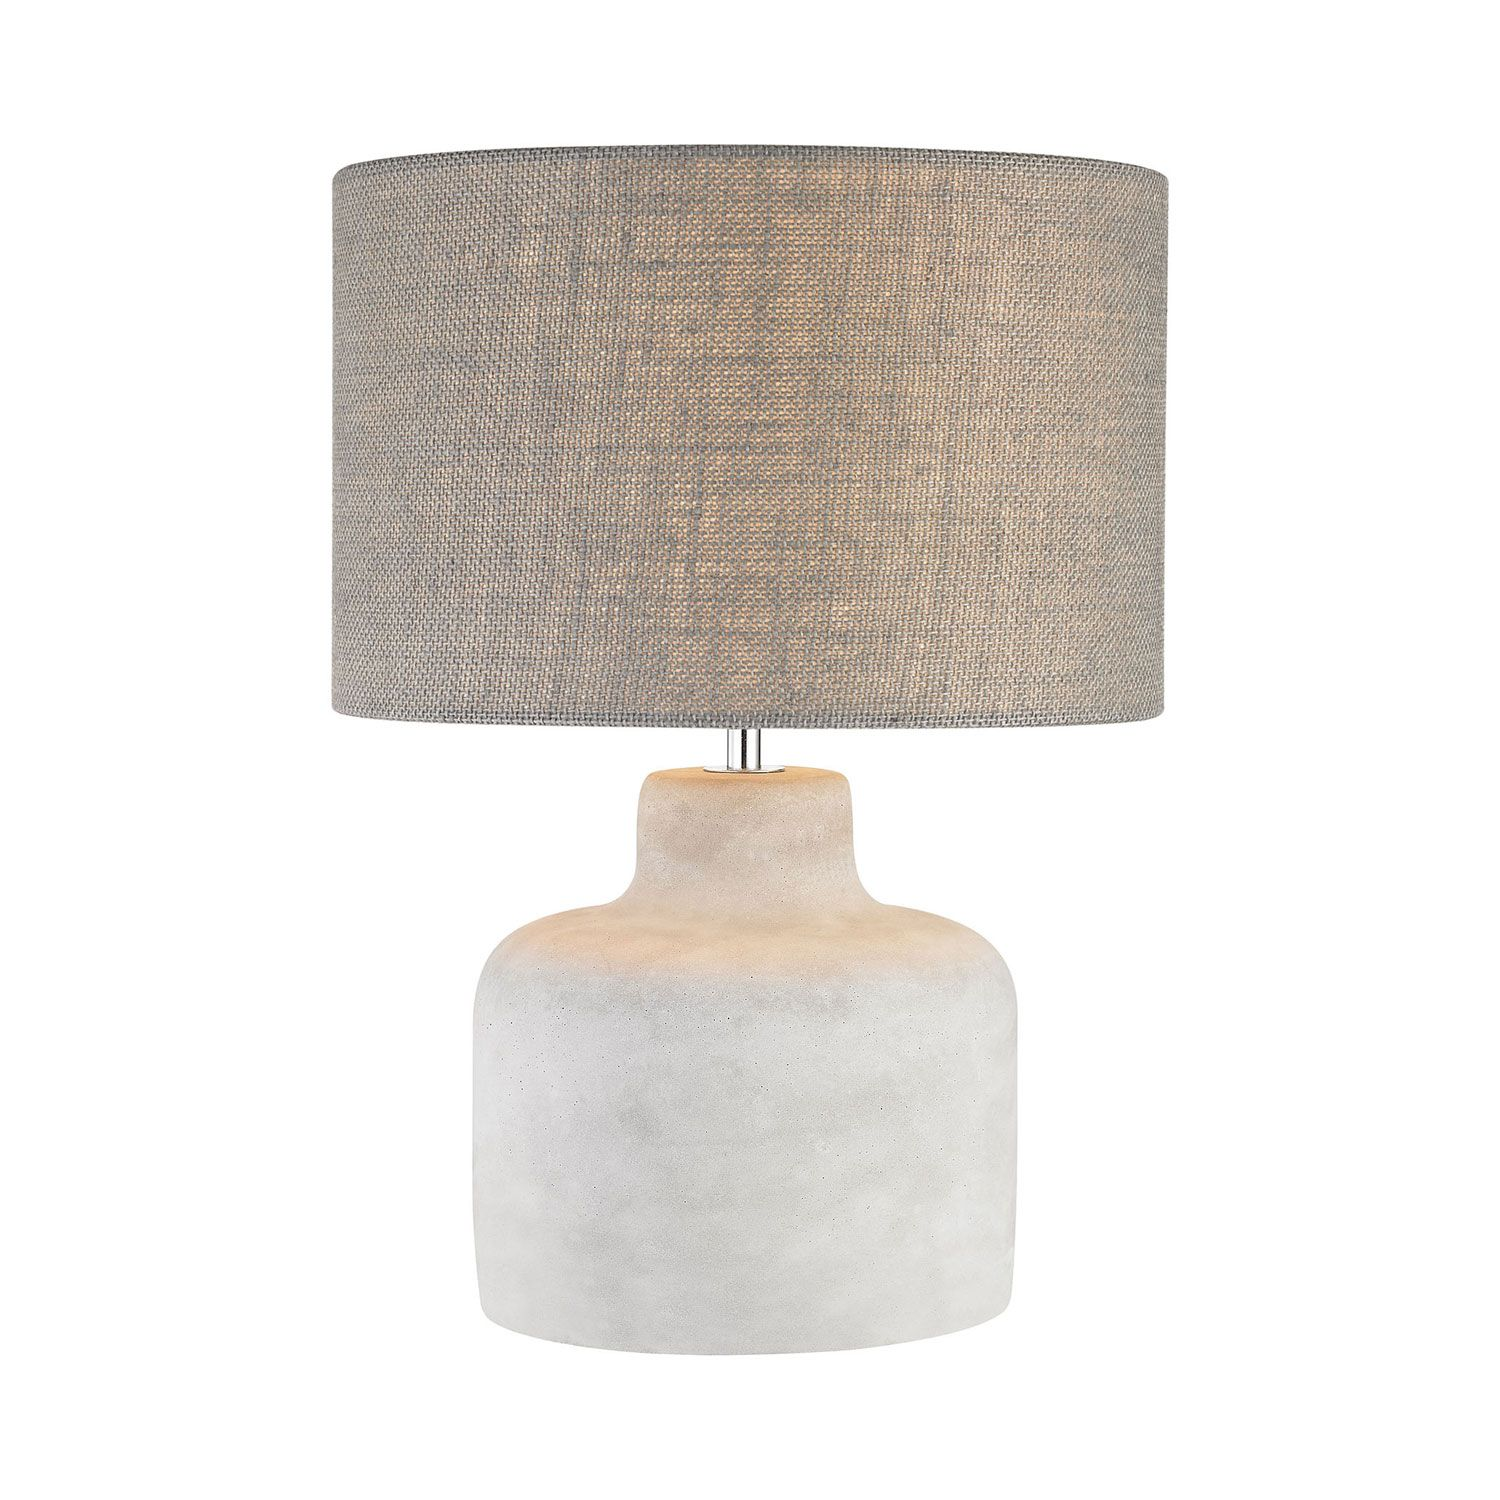 Dimond Rockport Polished Concrete One Light 12 Inch Table Lamp